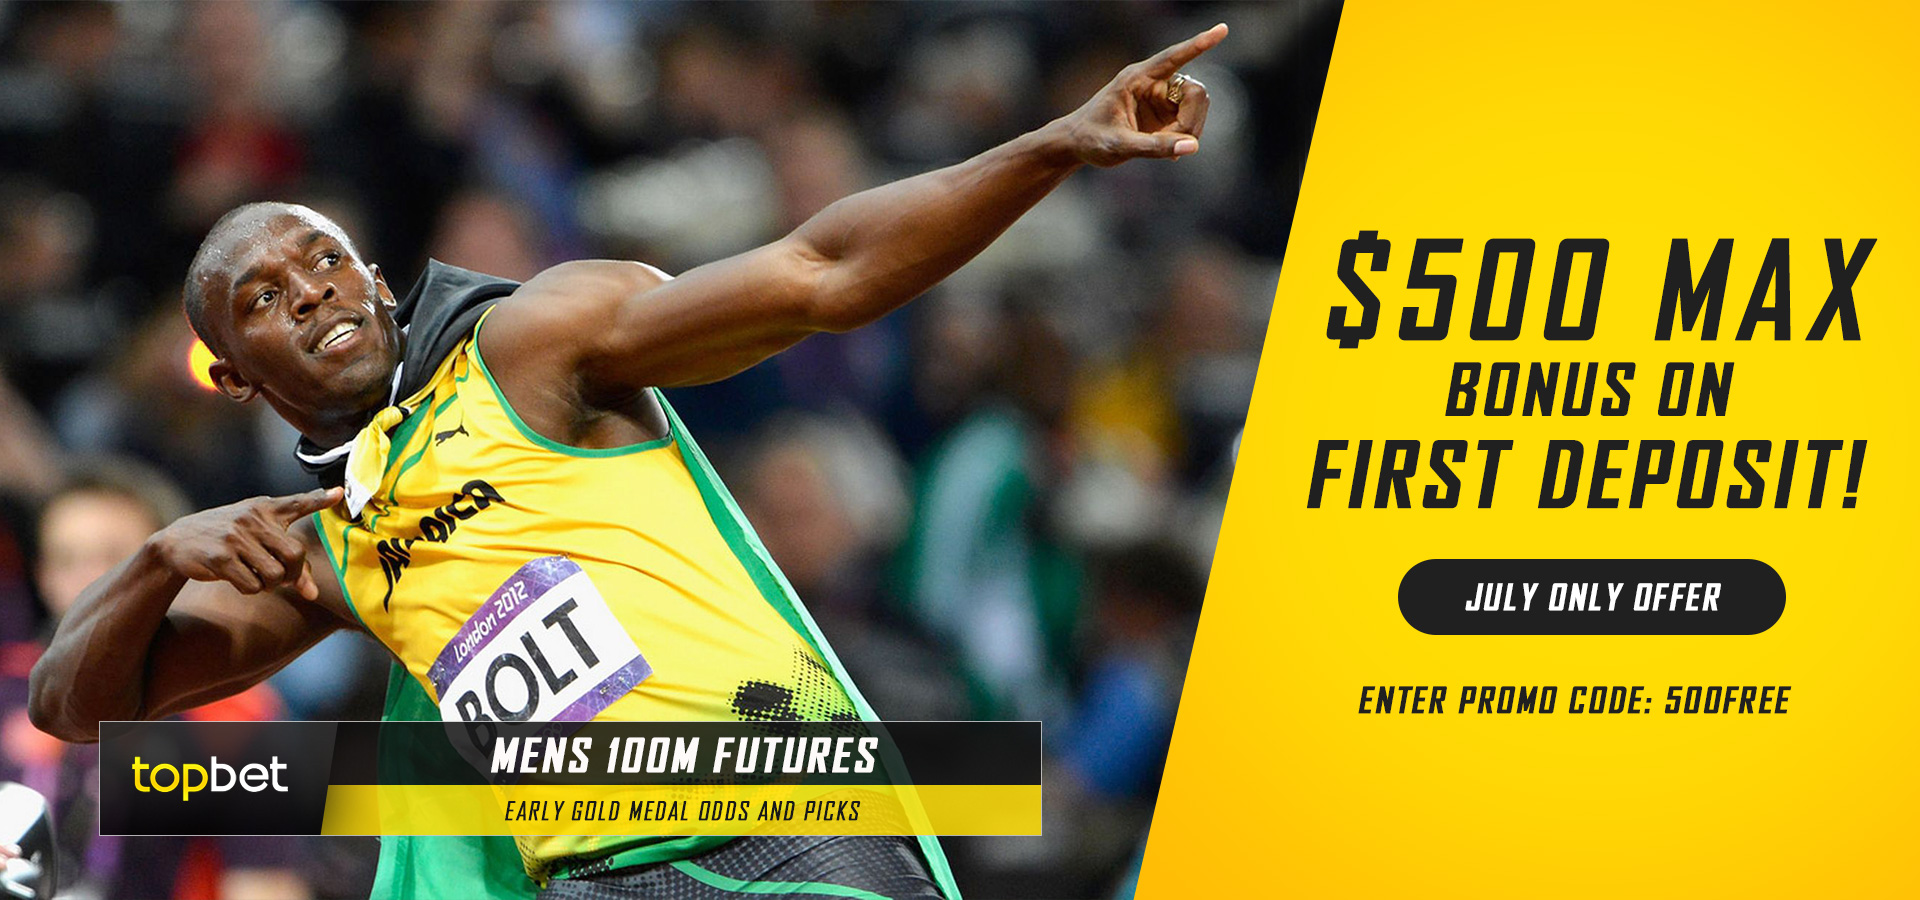 Men's 100m Summer Olympic Gold Medal Final - Early Odds